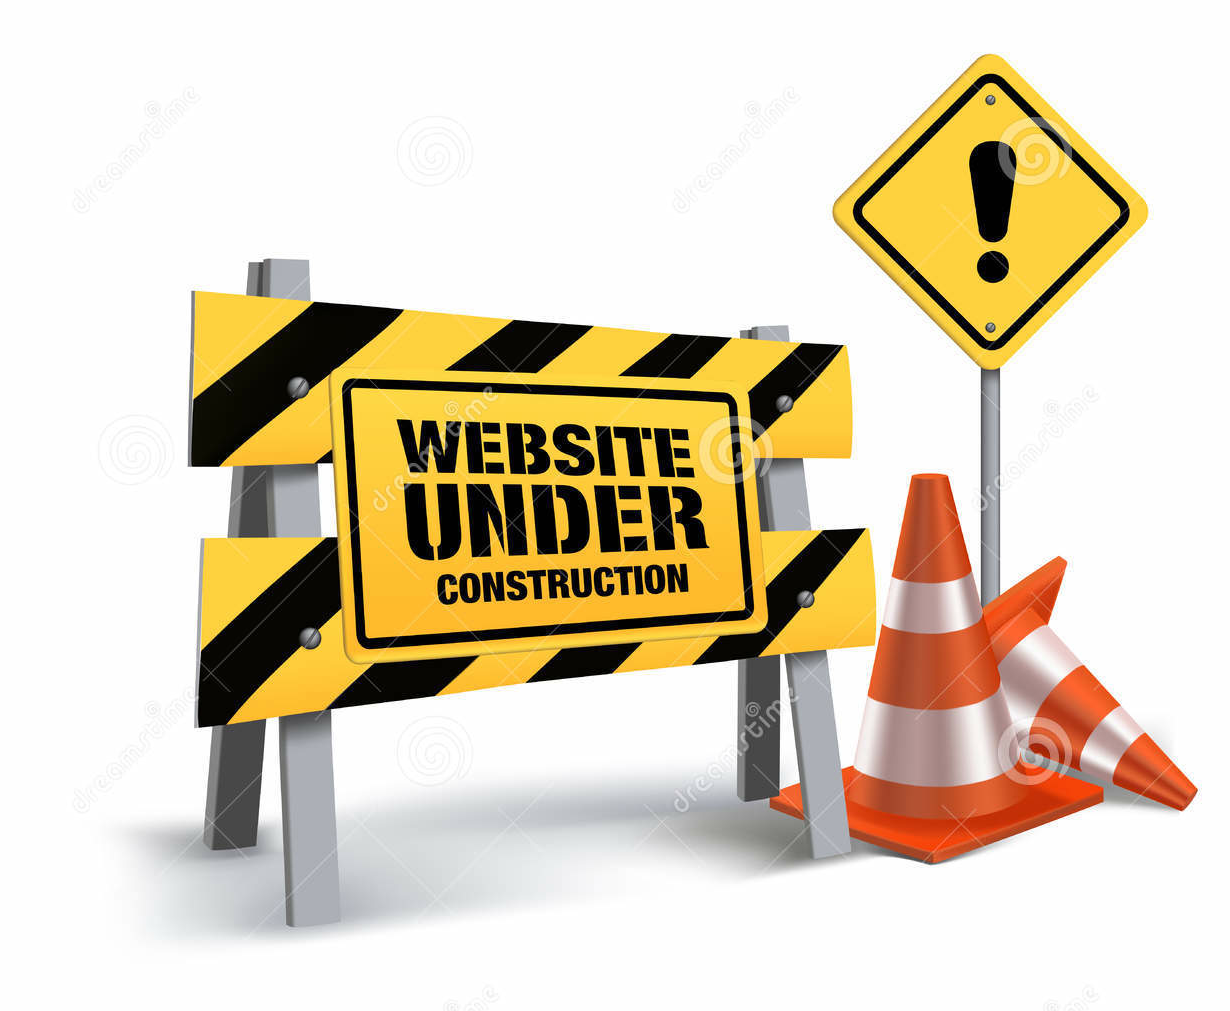 web under construction image